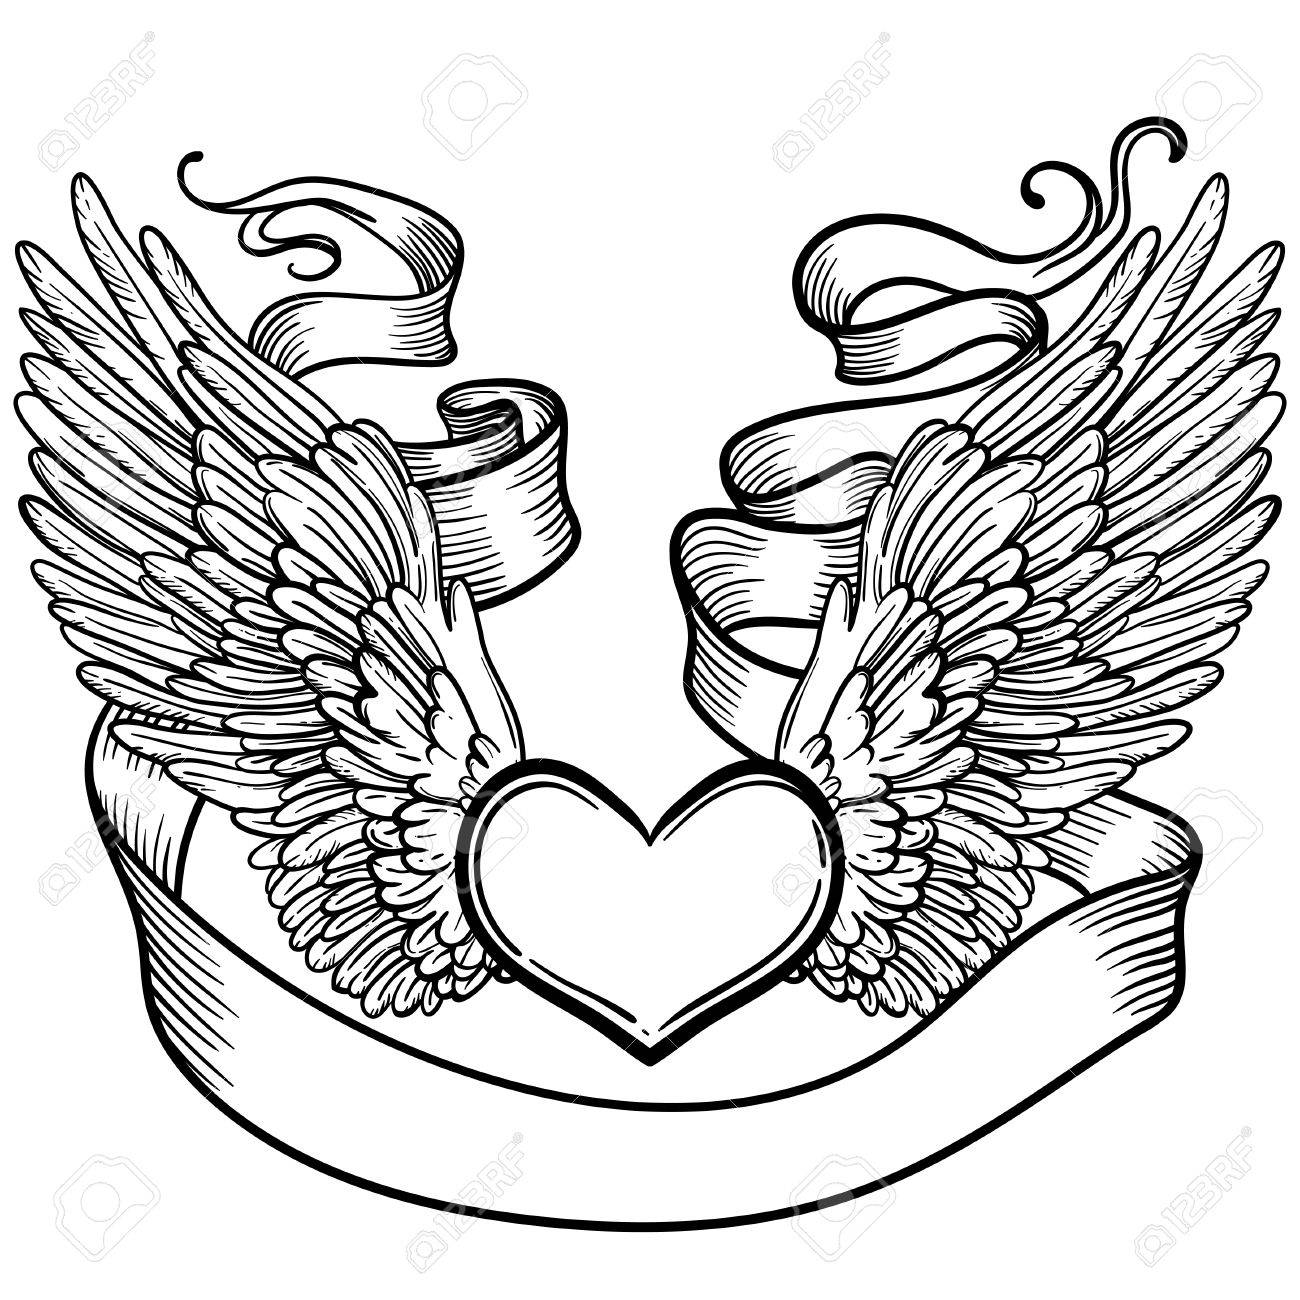 Line Art Illustration Of Angel Wings Heart Tape Vintage Print